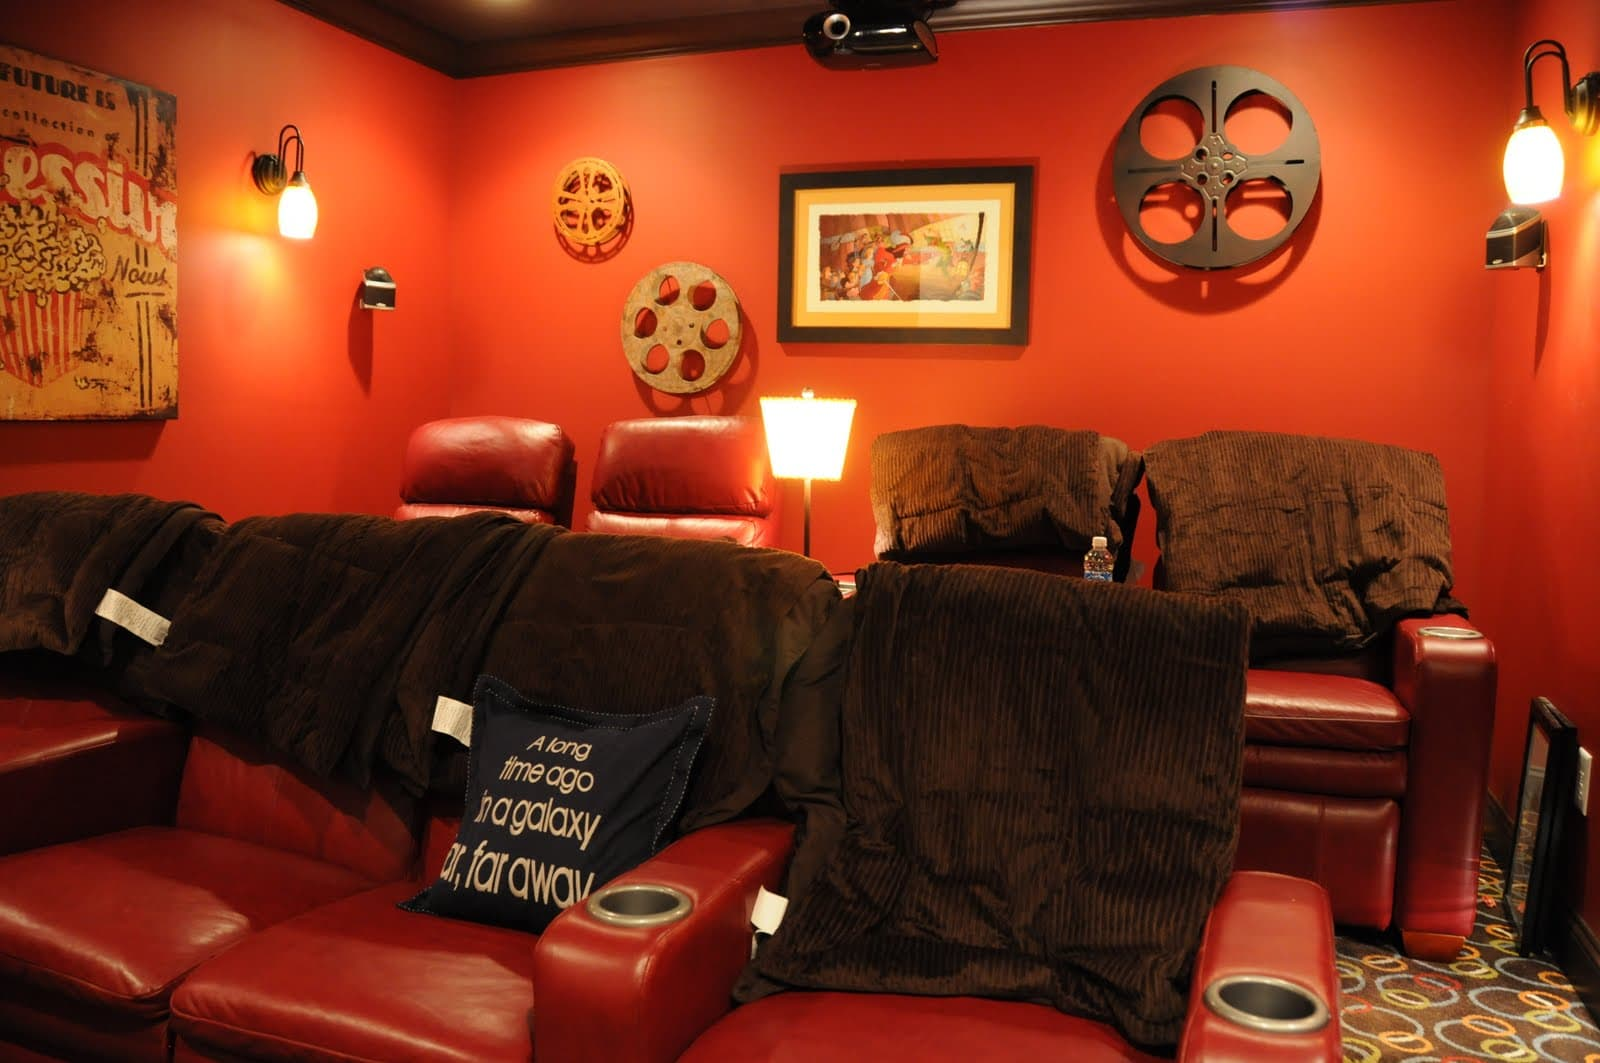 Home theater room decorating ideas the polkadot chair for Room decor ideas